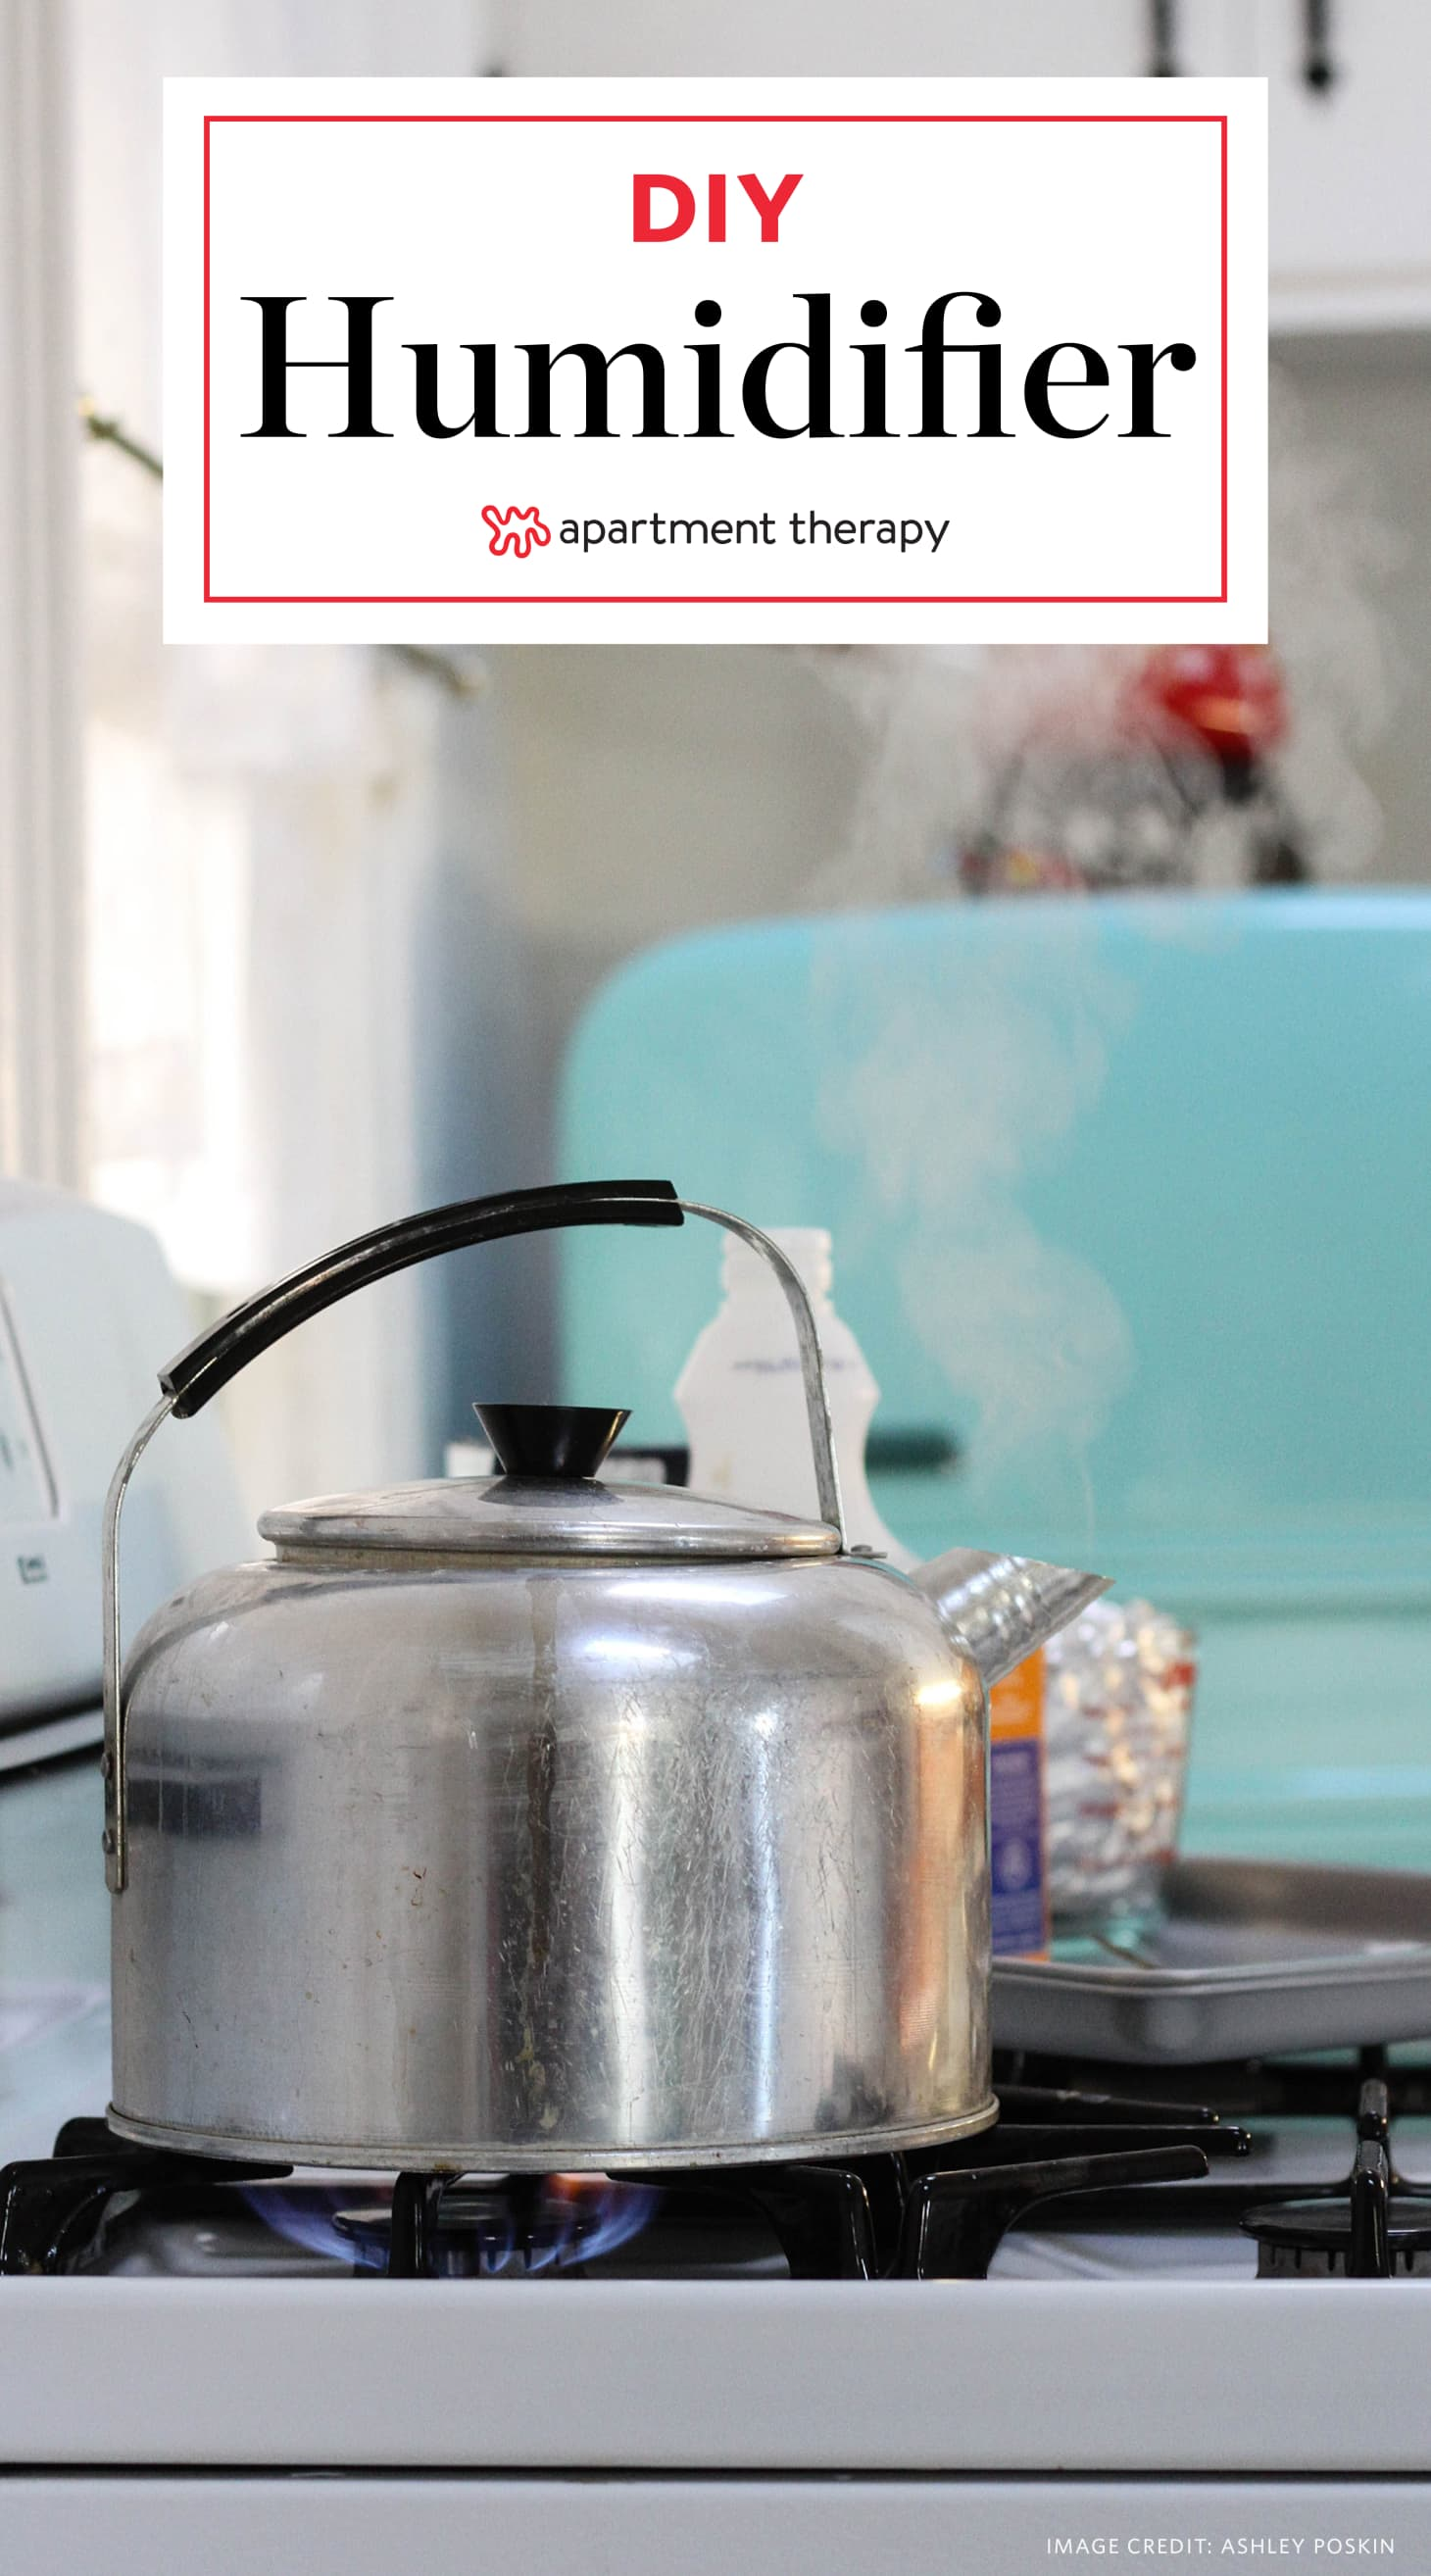 DIY Humidifer - How To Add Humidity To Dry Air | Apartment ...